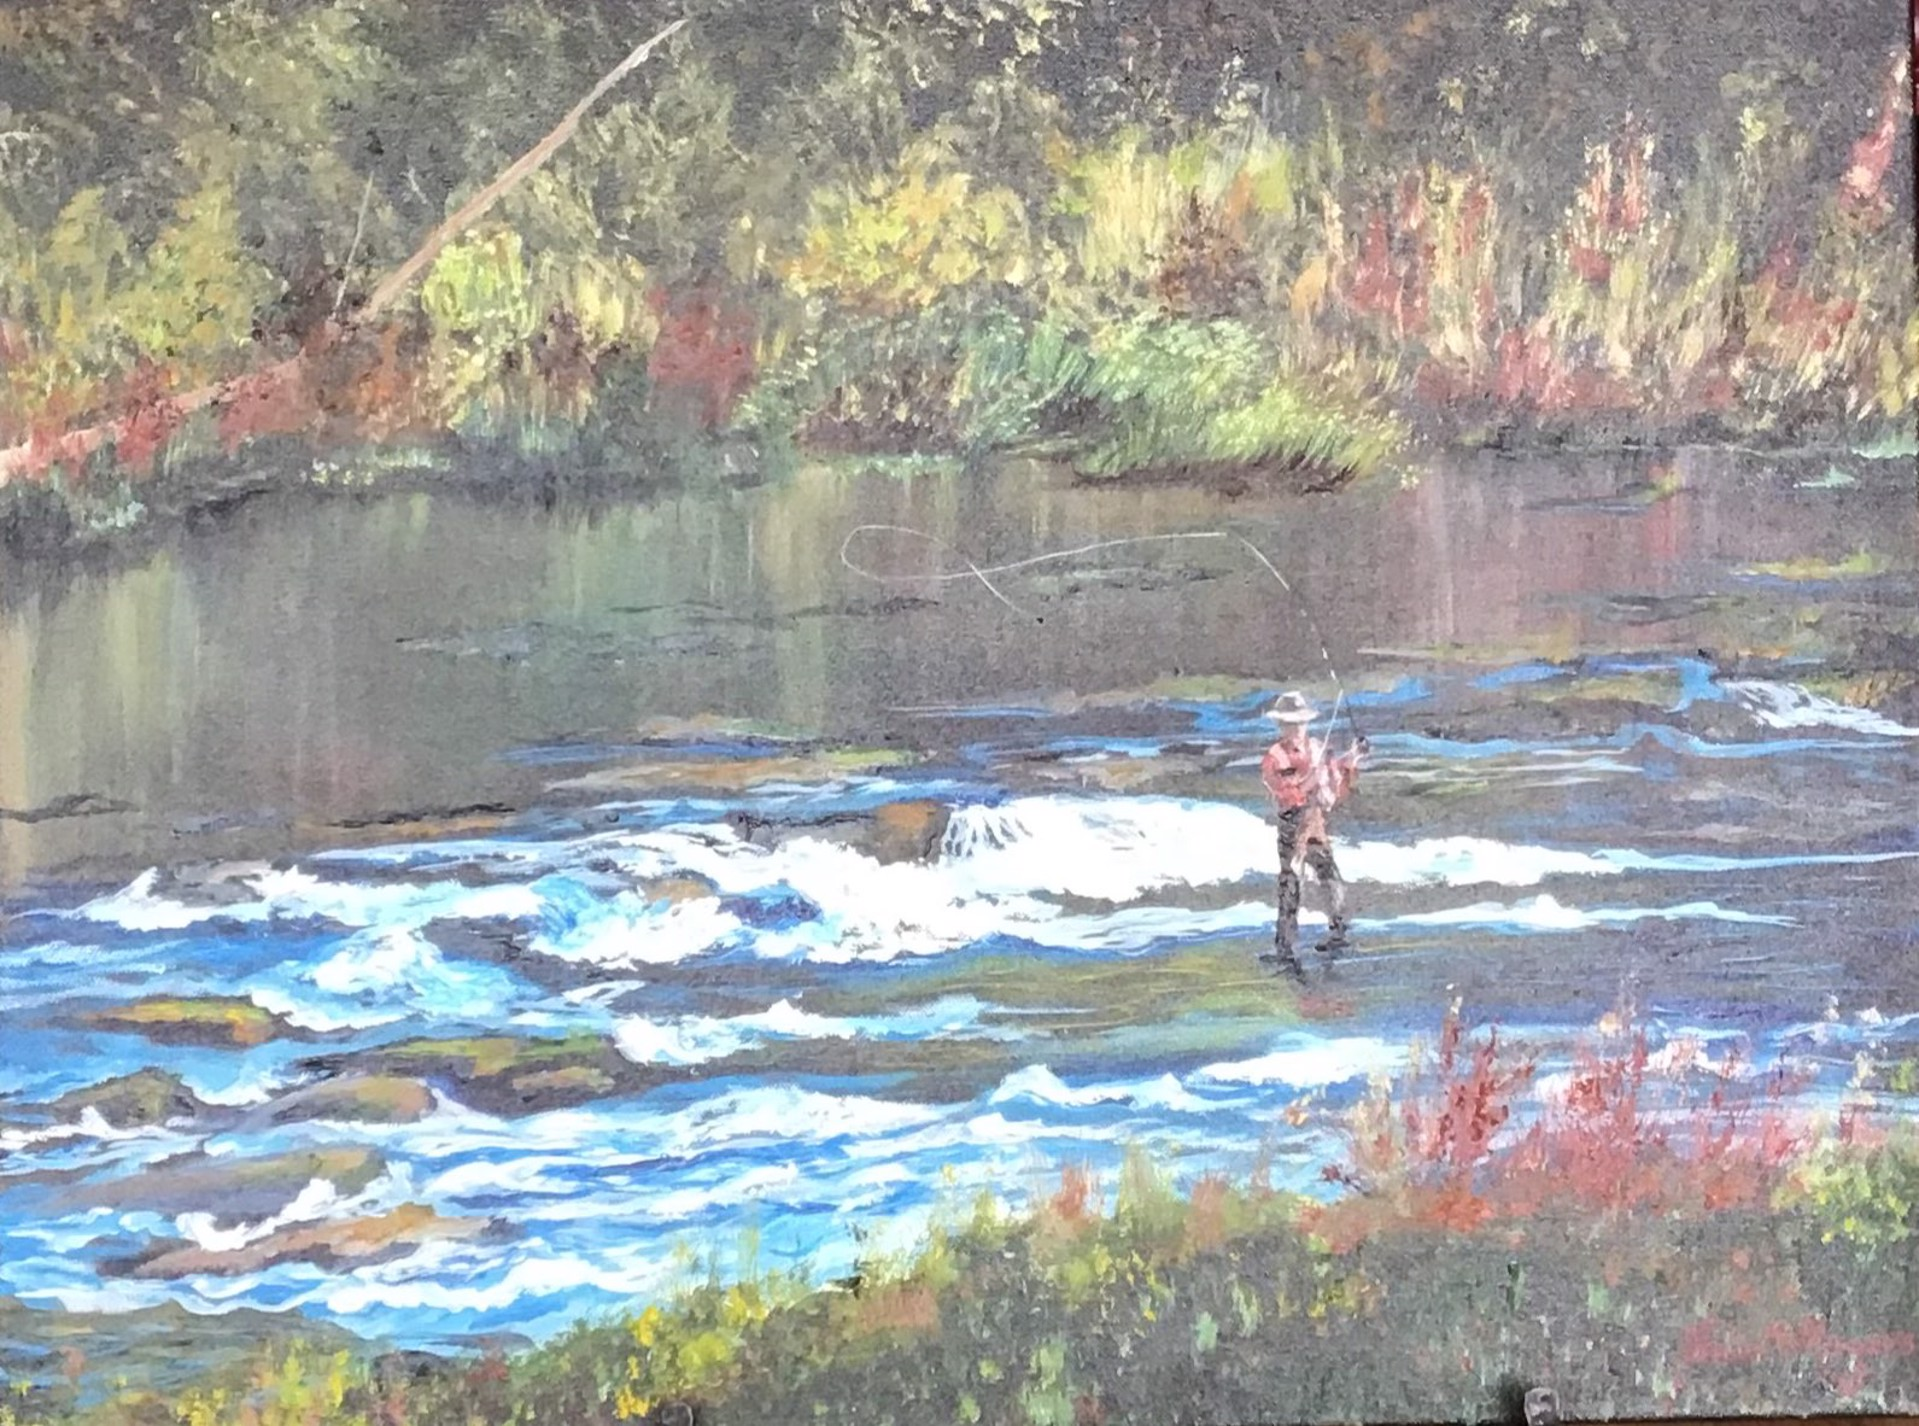 On the Fly - Toccoa River by Julie Rogers